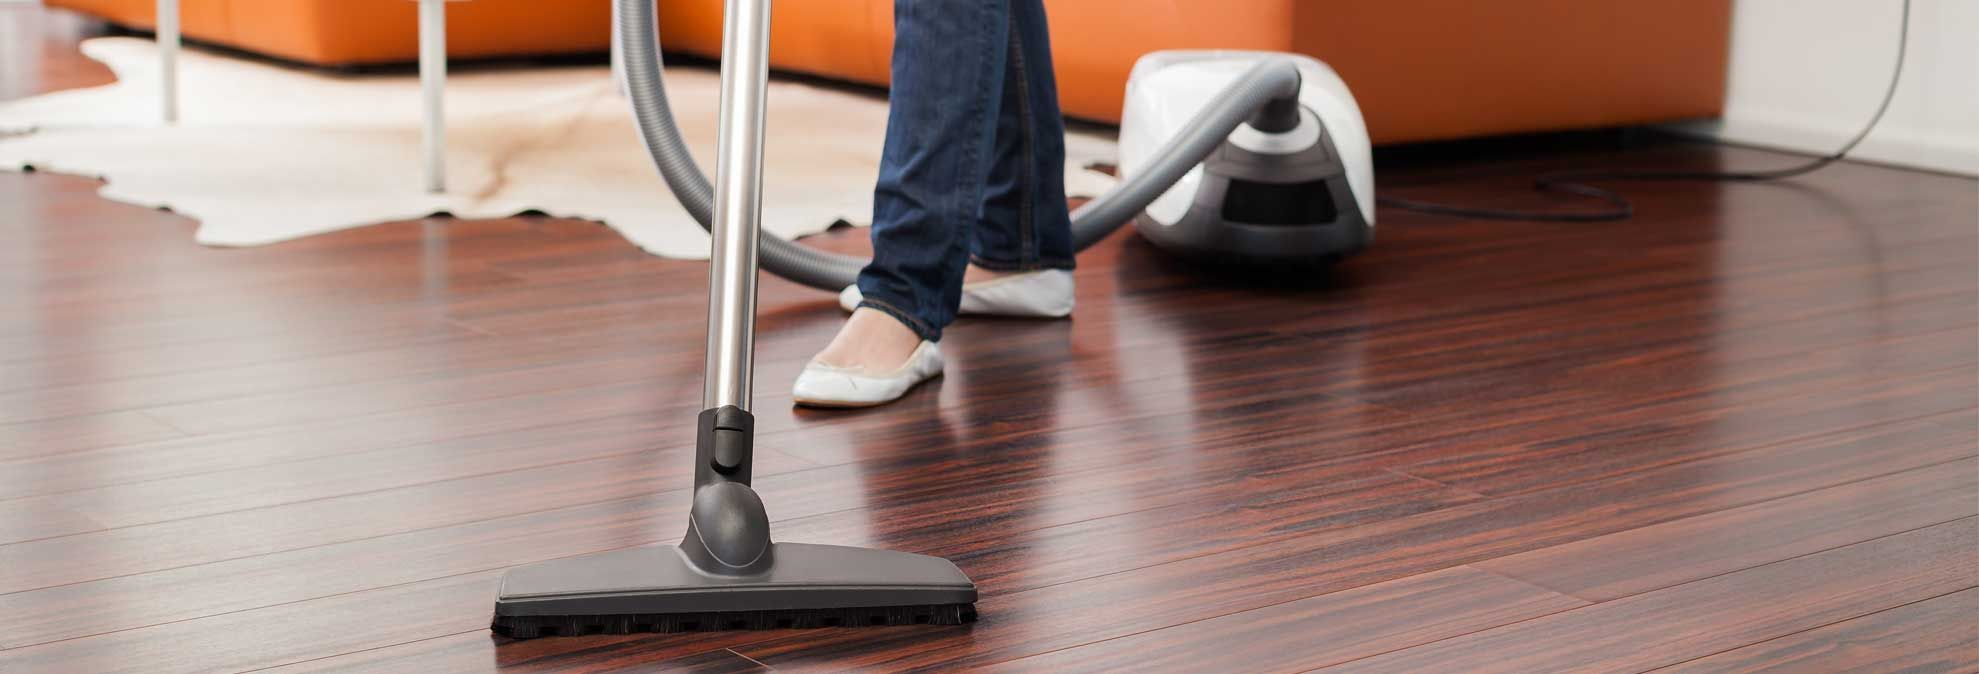 Consumer Reports Picks The Best Vacuums Of 2016 From Its Tough Vacuum Cleaner Tests